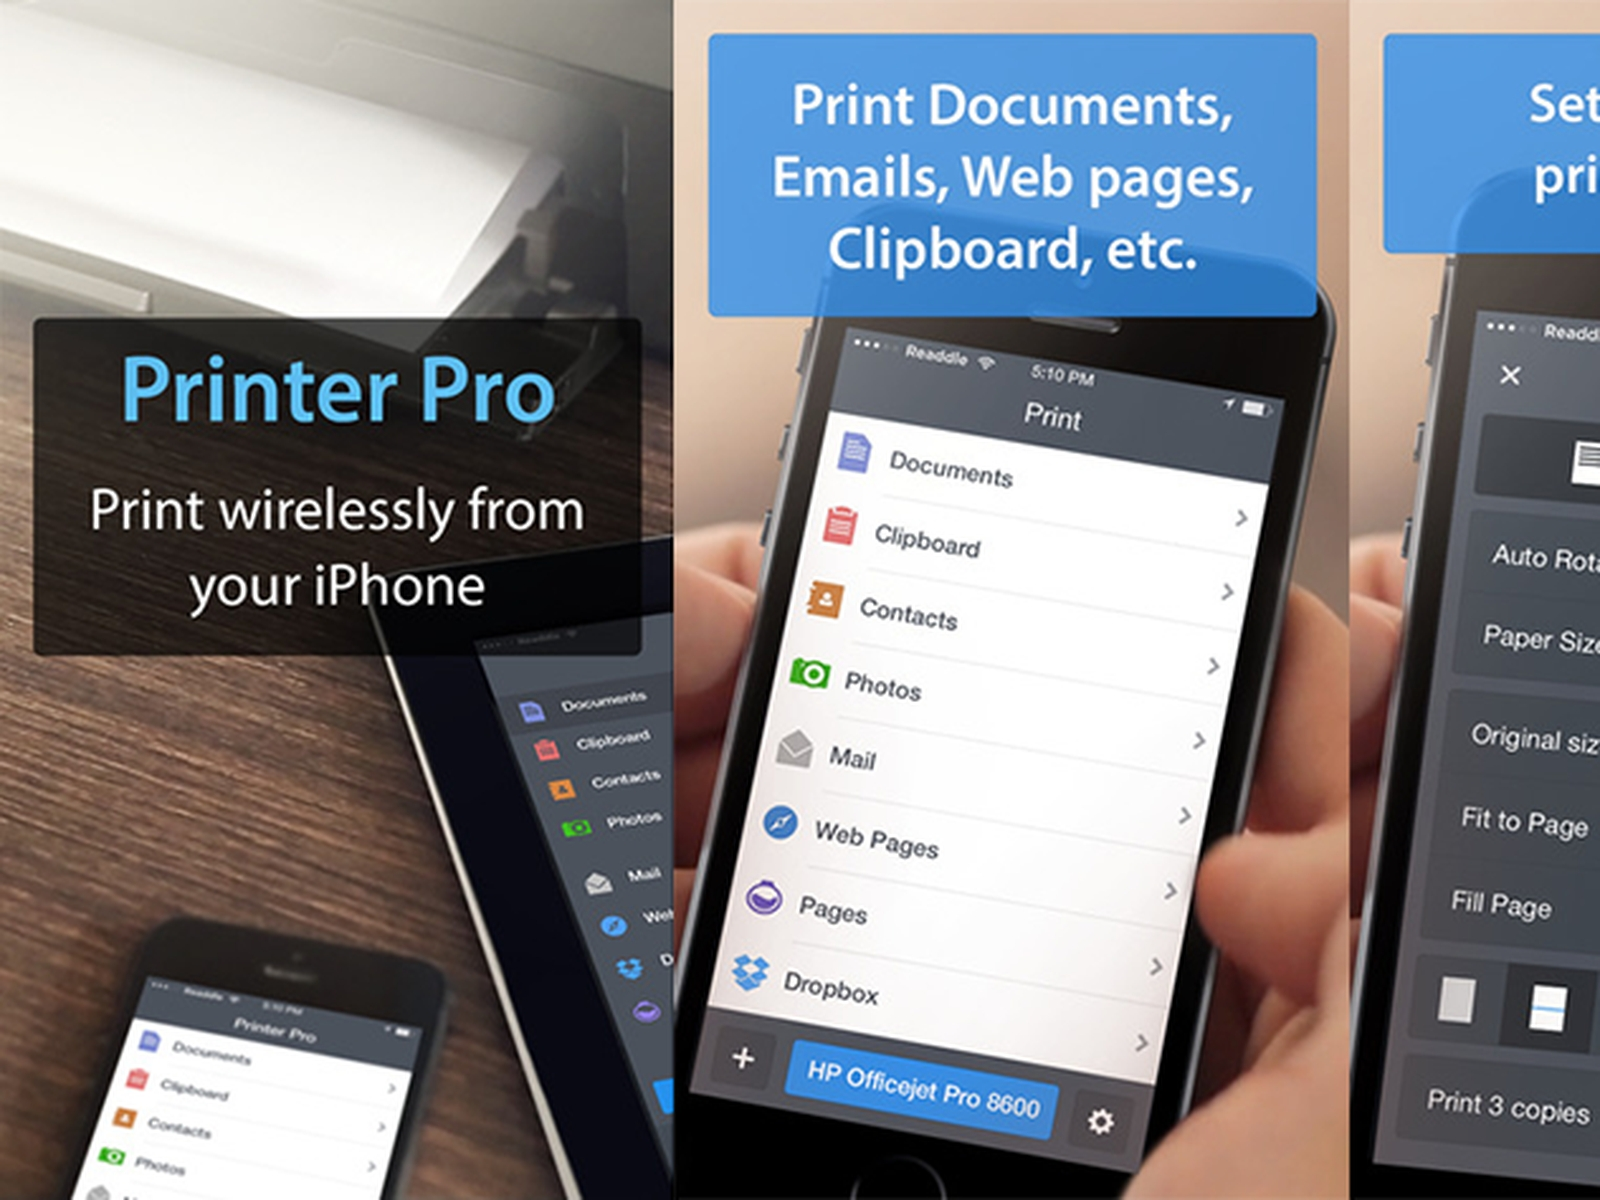 Mobile Printing App 'printer Pro' Named Apple's Free App Of